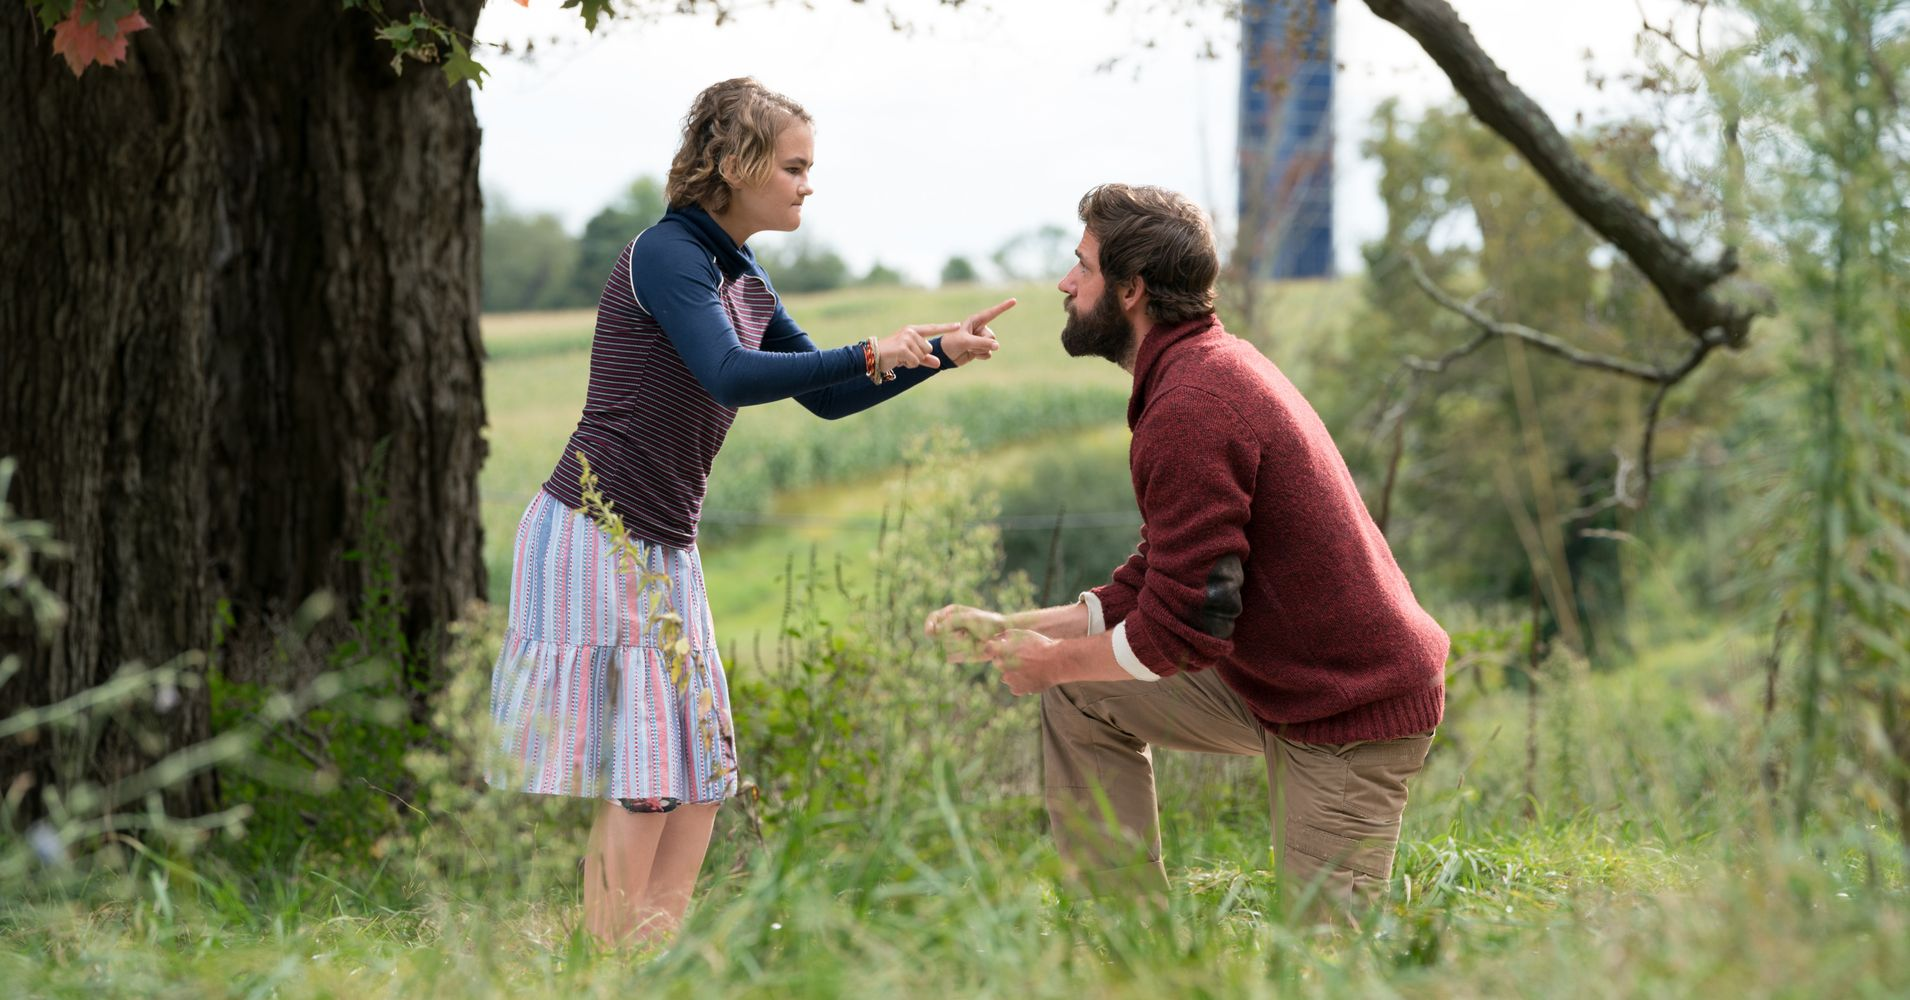 A Quiet Place Falls Into A Tired Trope About Deafness